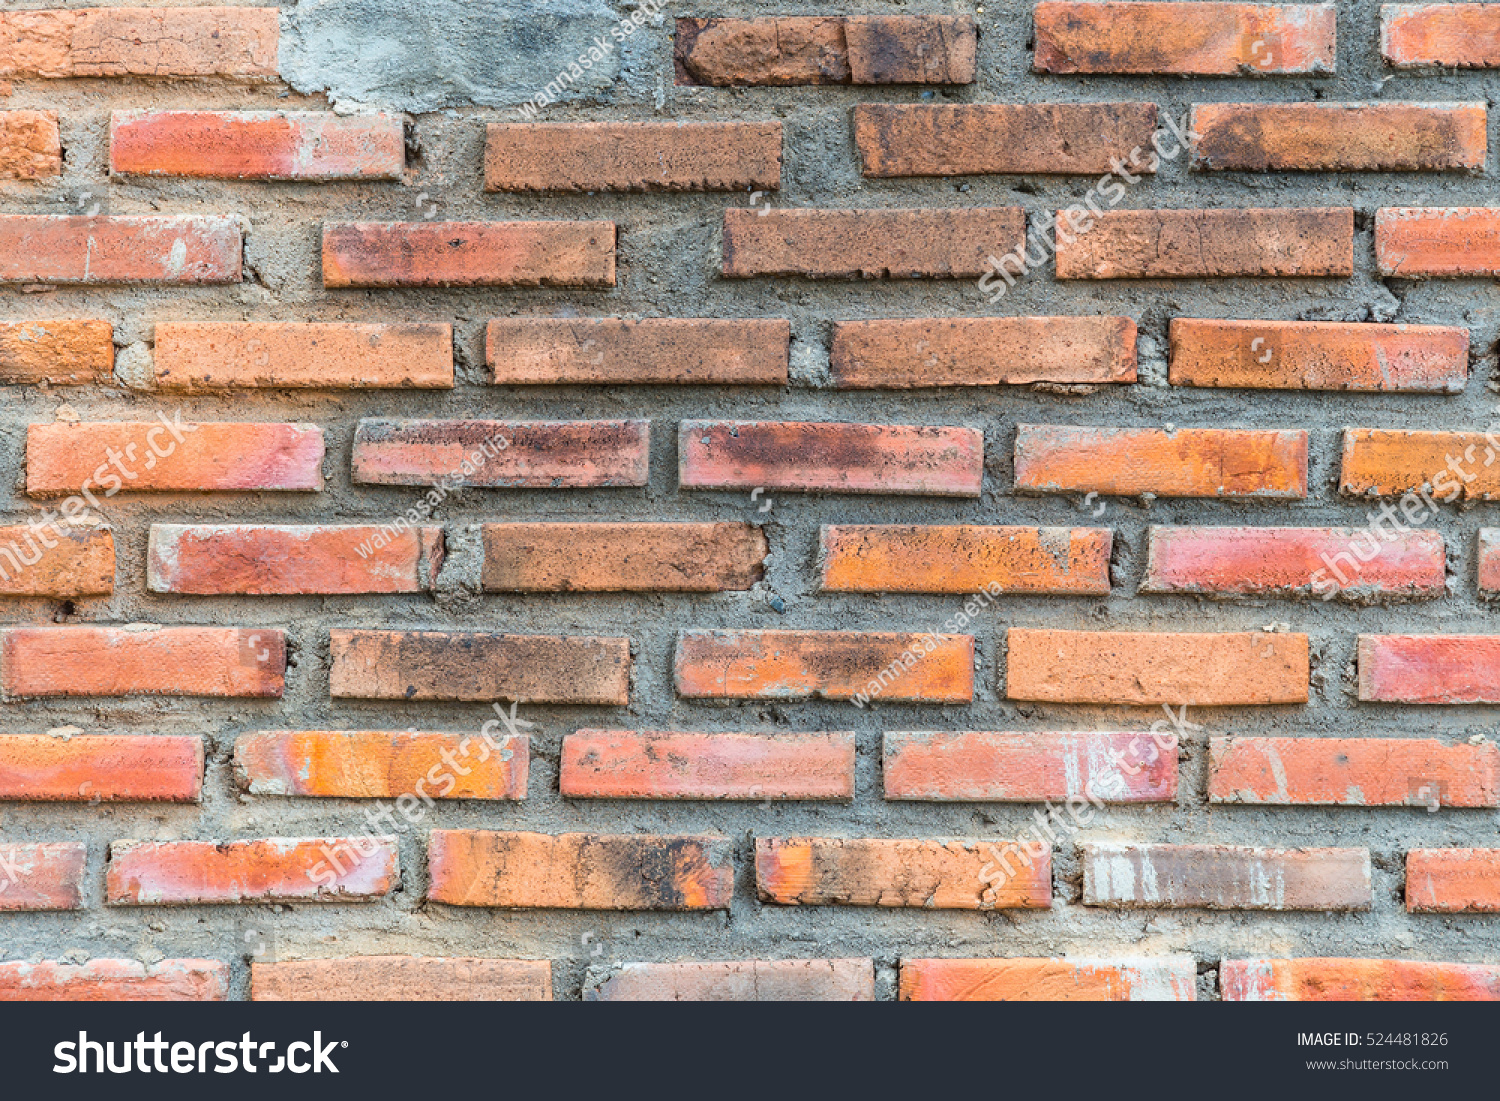 Background Masak Brick Wall For Background Ez Canvas